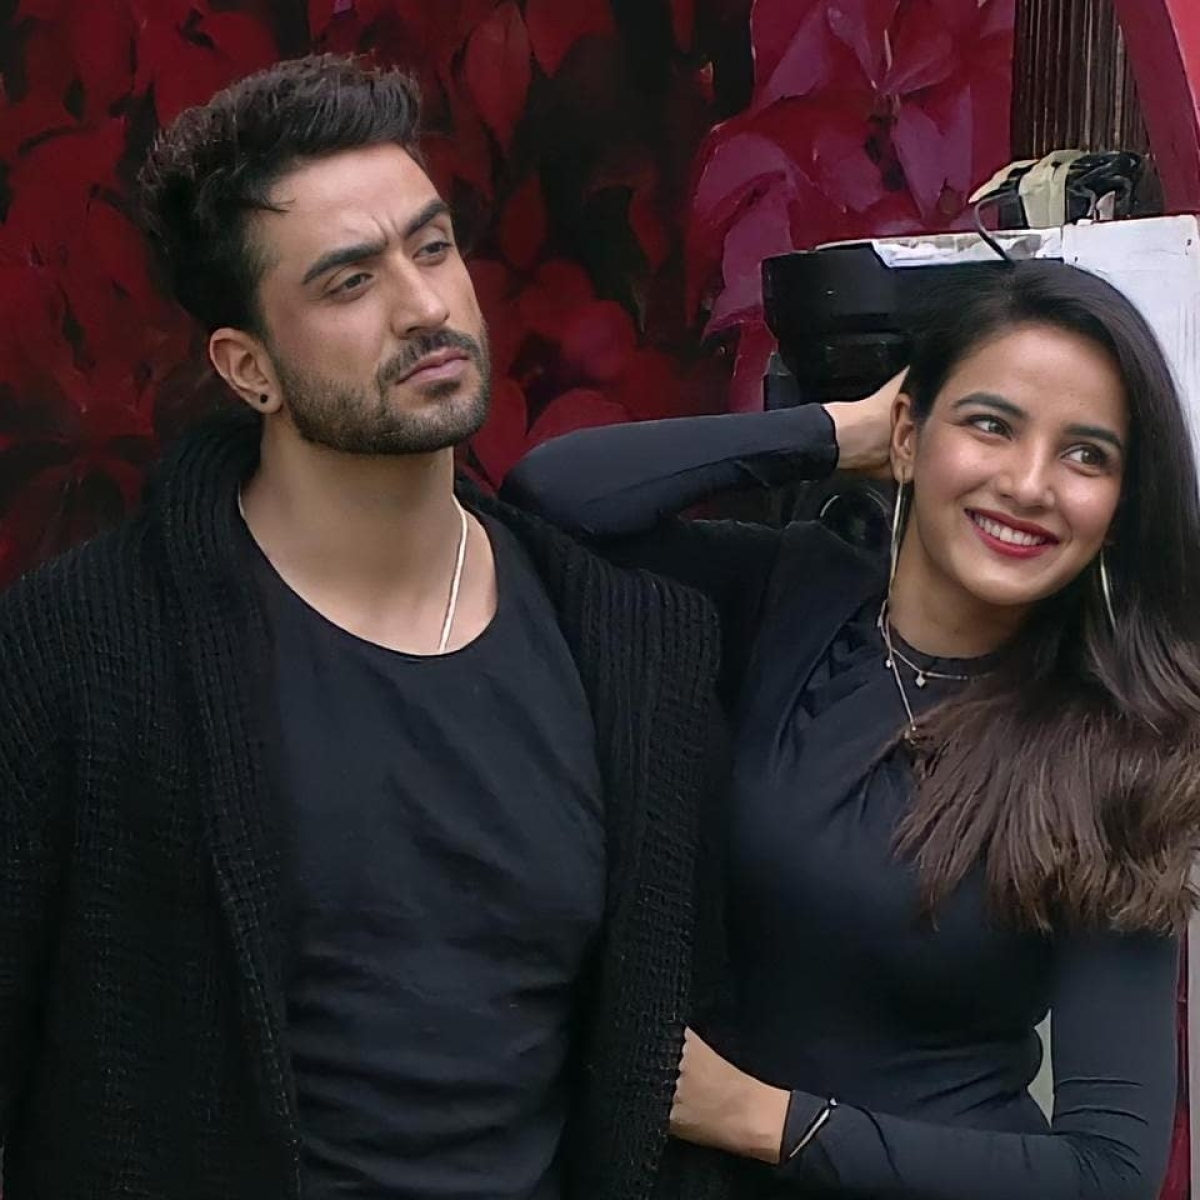 Bigg Boss 14: Jasmin Bhasin and Aly Goni's families to discuss marriage after the show